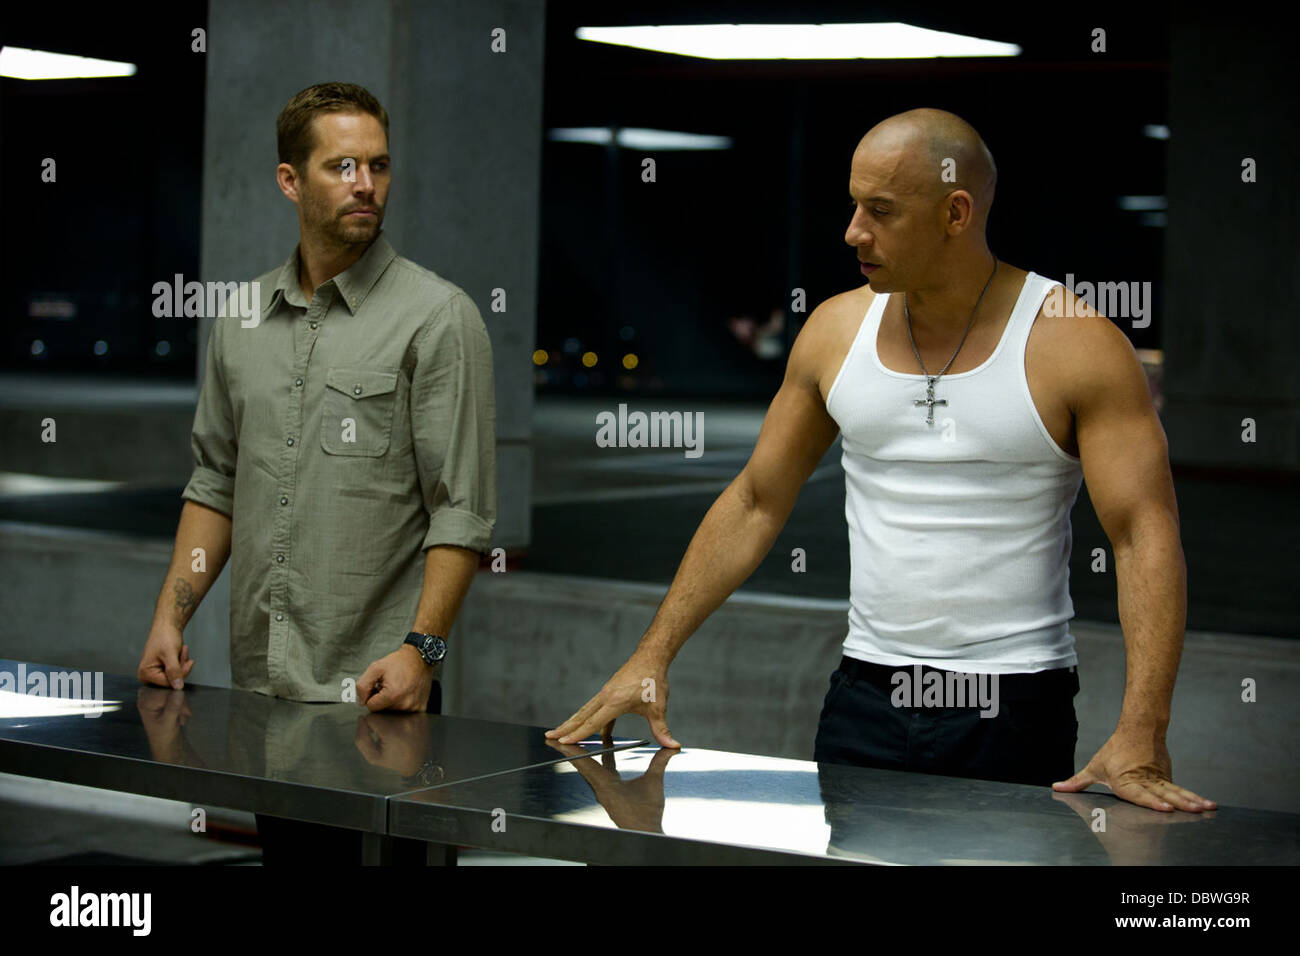 FAST AND FURIOUS 6 (2013) VIN DIESEL, PAUL WALKER JUSTIN LIN (DIR) 001 MOVIESTORE COLLECTION LTD Stock Photo